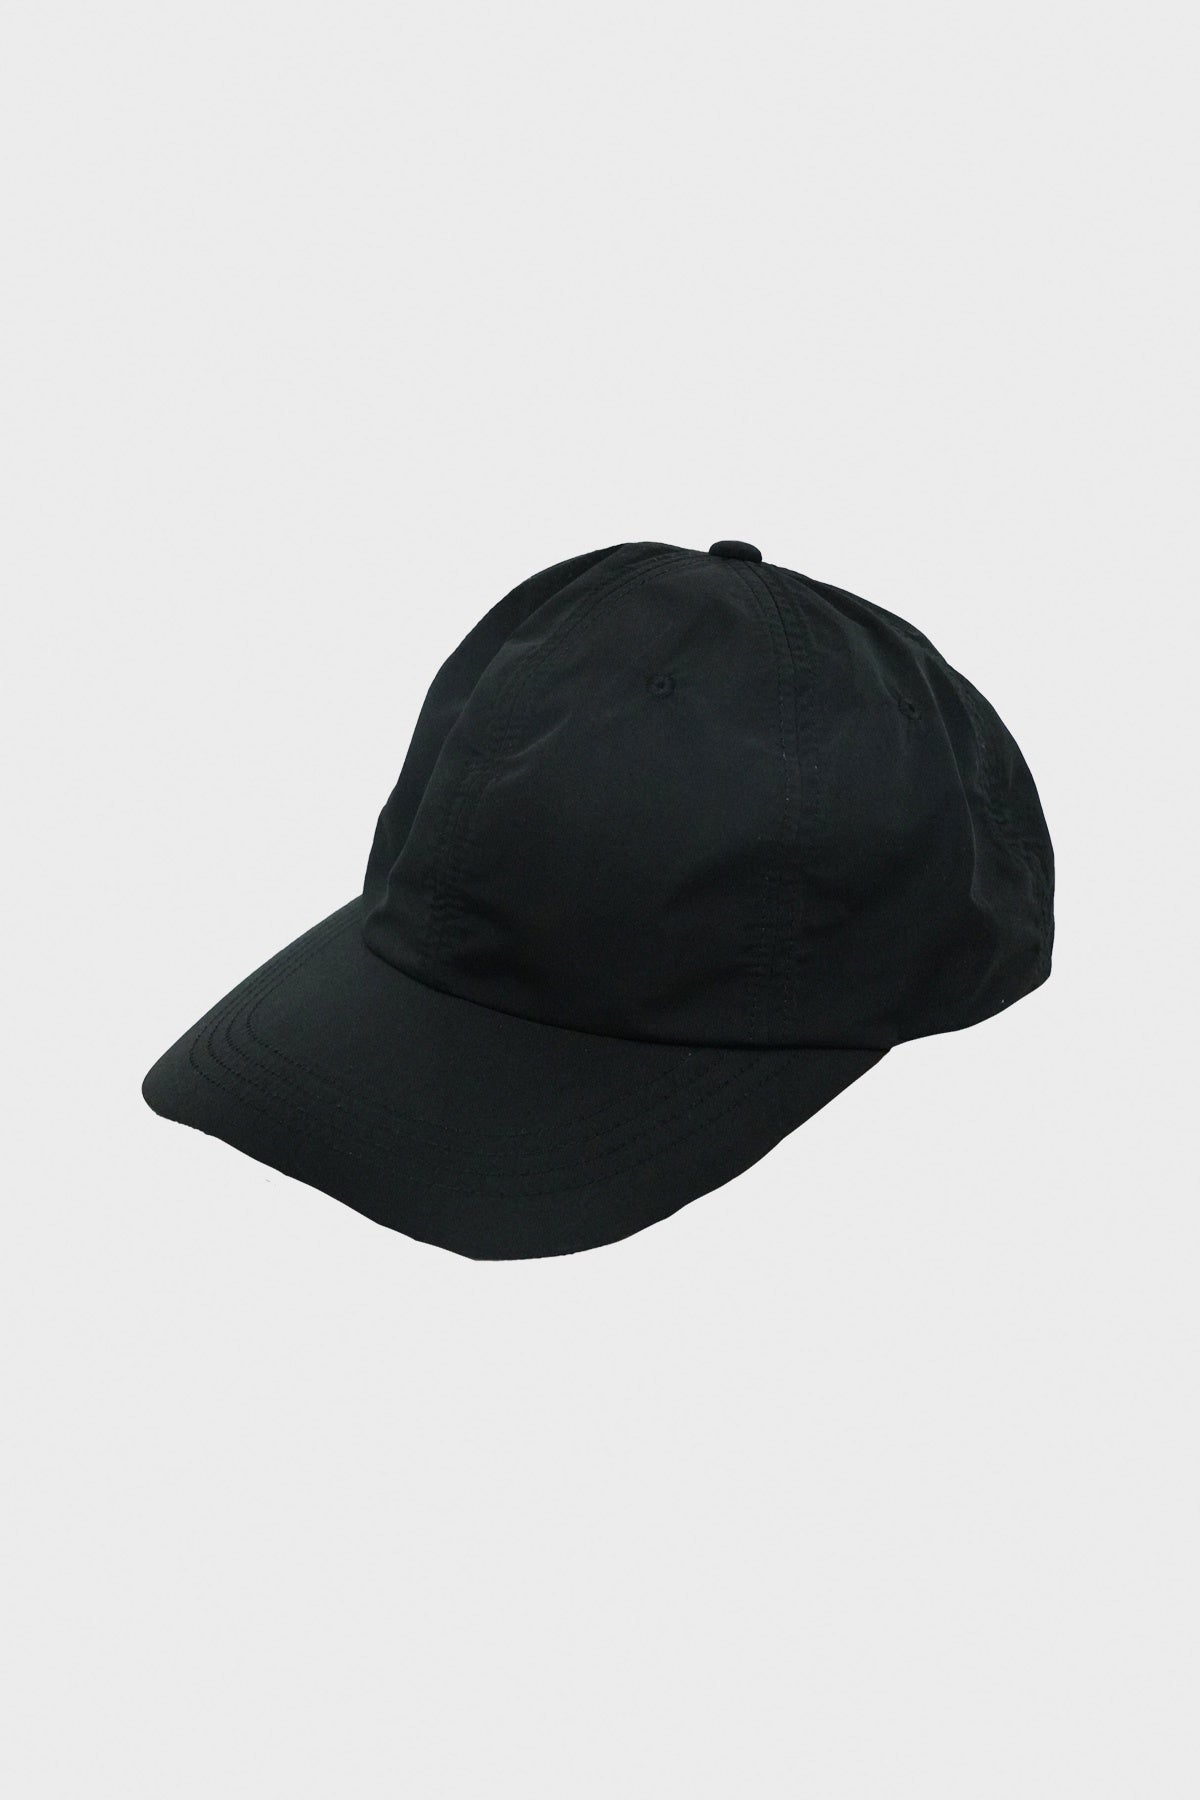 Lady White Co. - Summer Cap - Black - Canoe Club